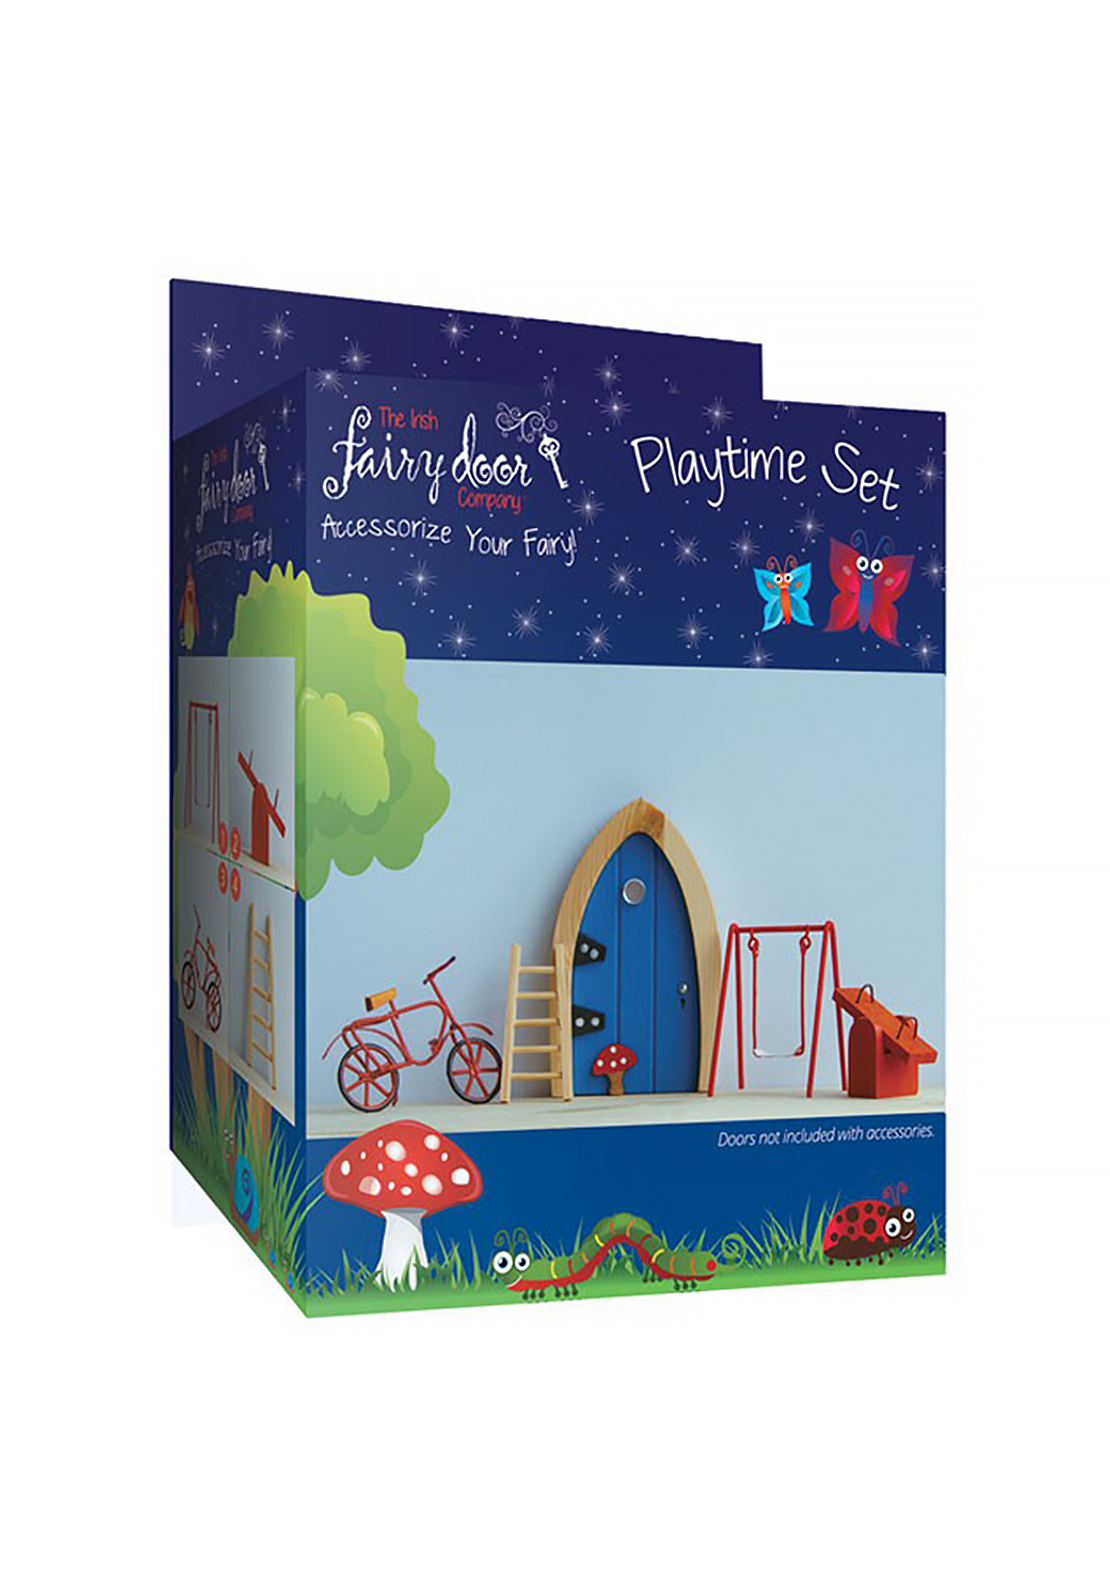 The irish fairy door company playtime accessory set for The irish fairy door company facebook